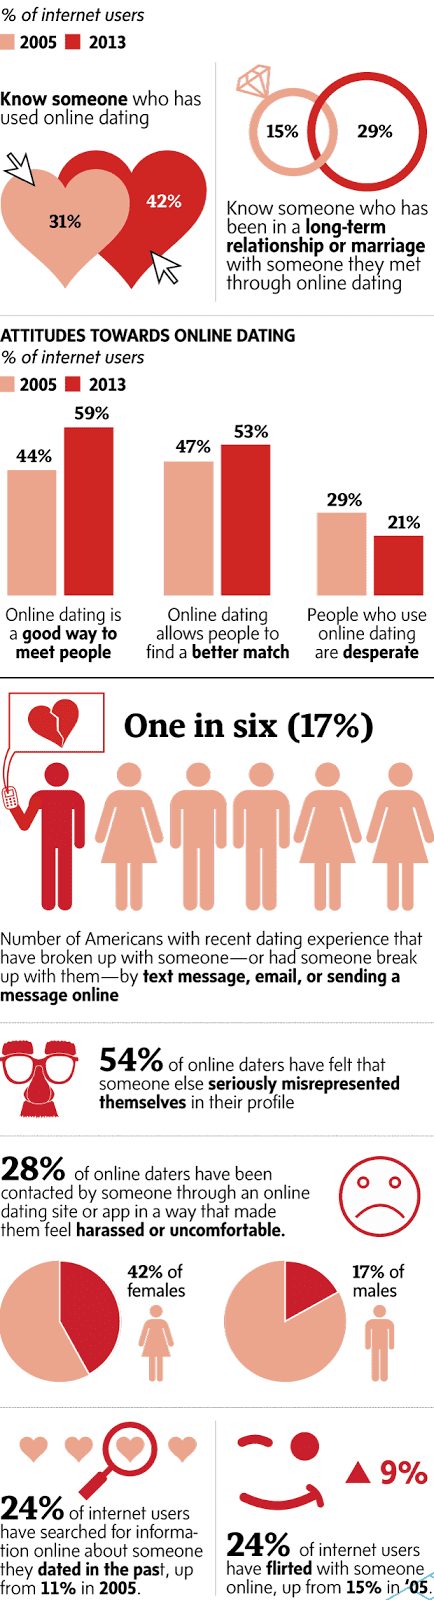 Online dating robot, women performing porn